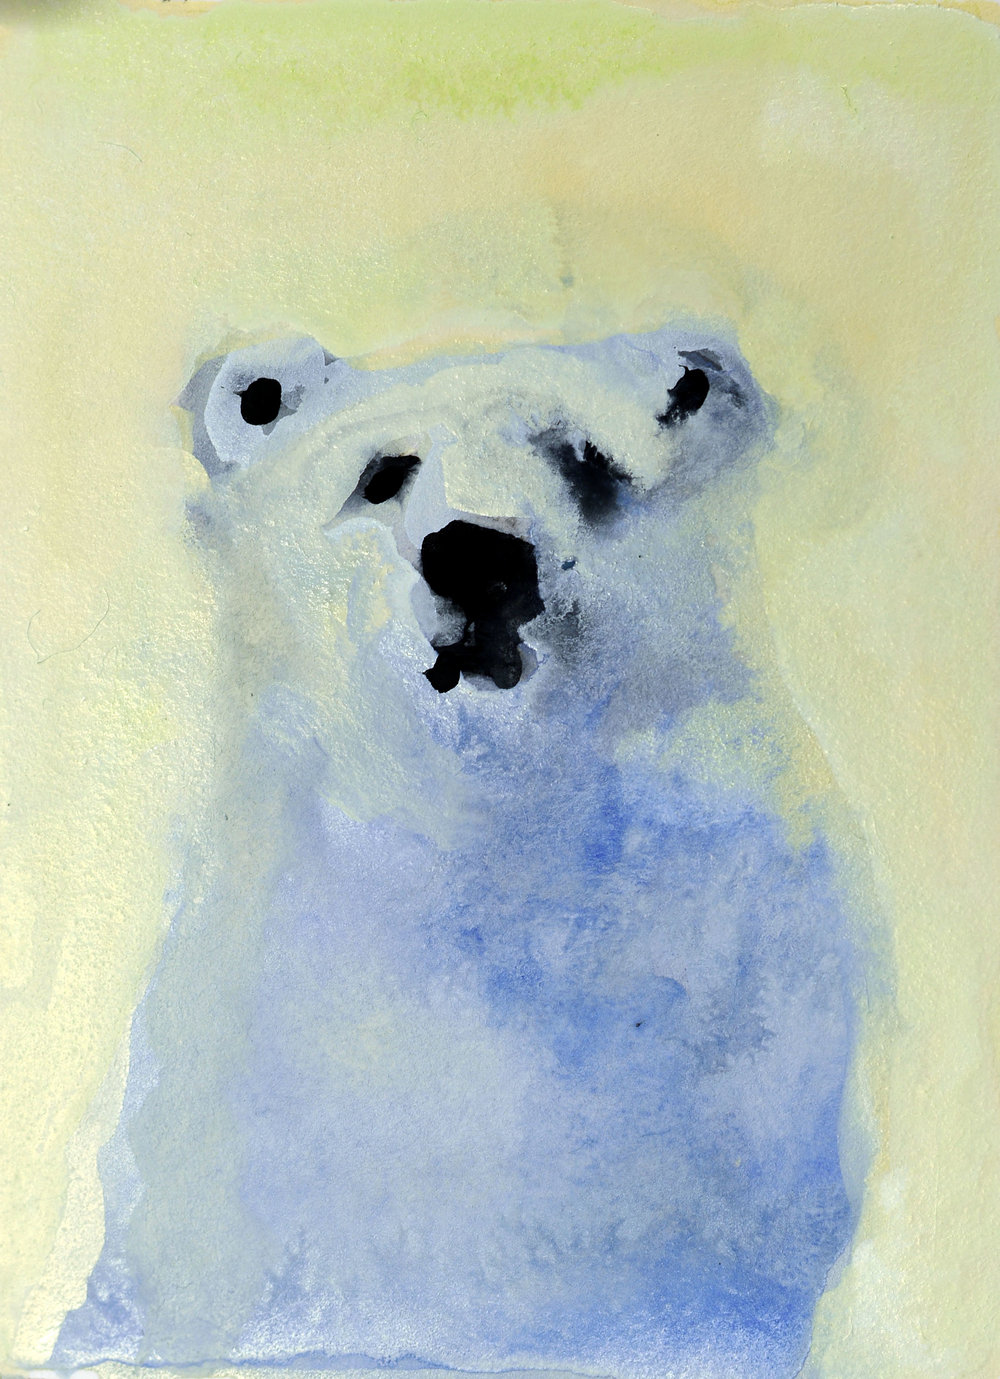 REBECCA_KINKEAD_polar bear no. 4_4x3 inset on 11x7.5 paper.jpg